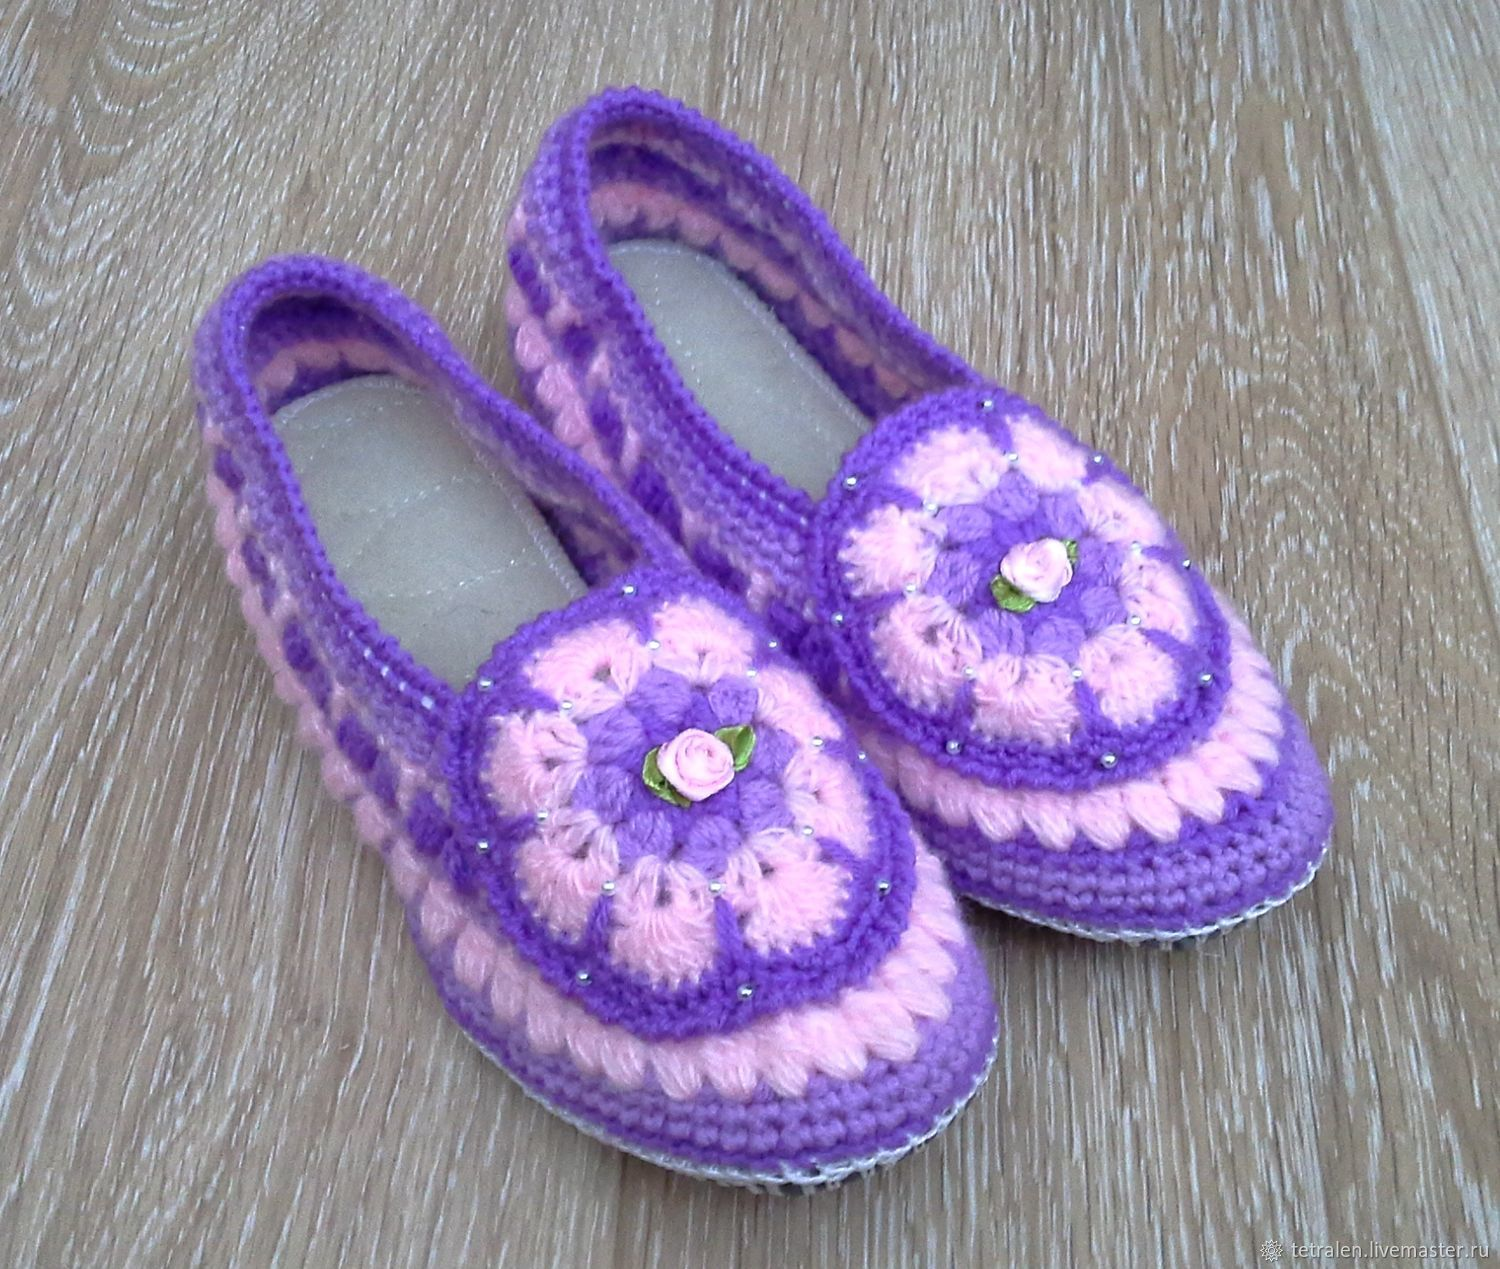 d4d950ec65084b Online shopping on Handmade Shoes handmade. Order Knitted Slippers  Thumbelina. Knitted stuff from Svetlana. Livemaster.